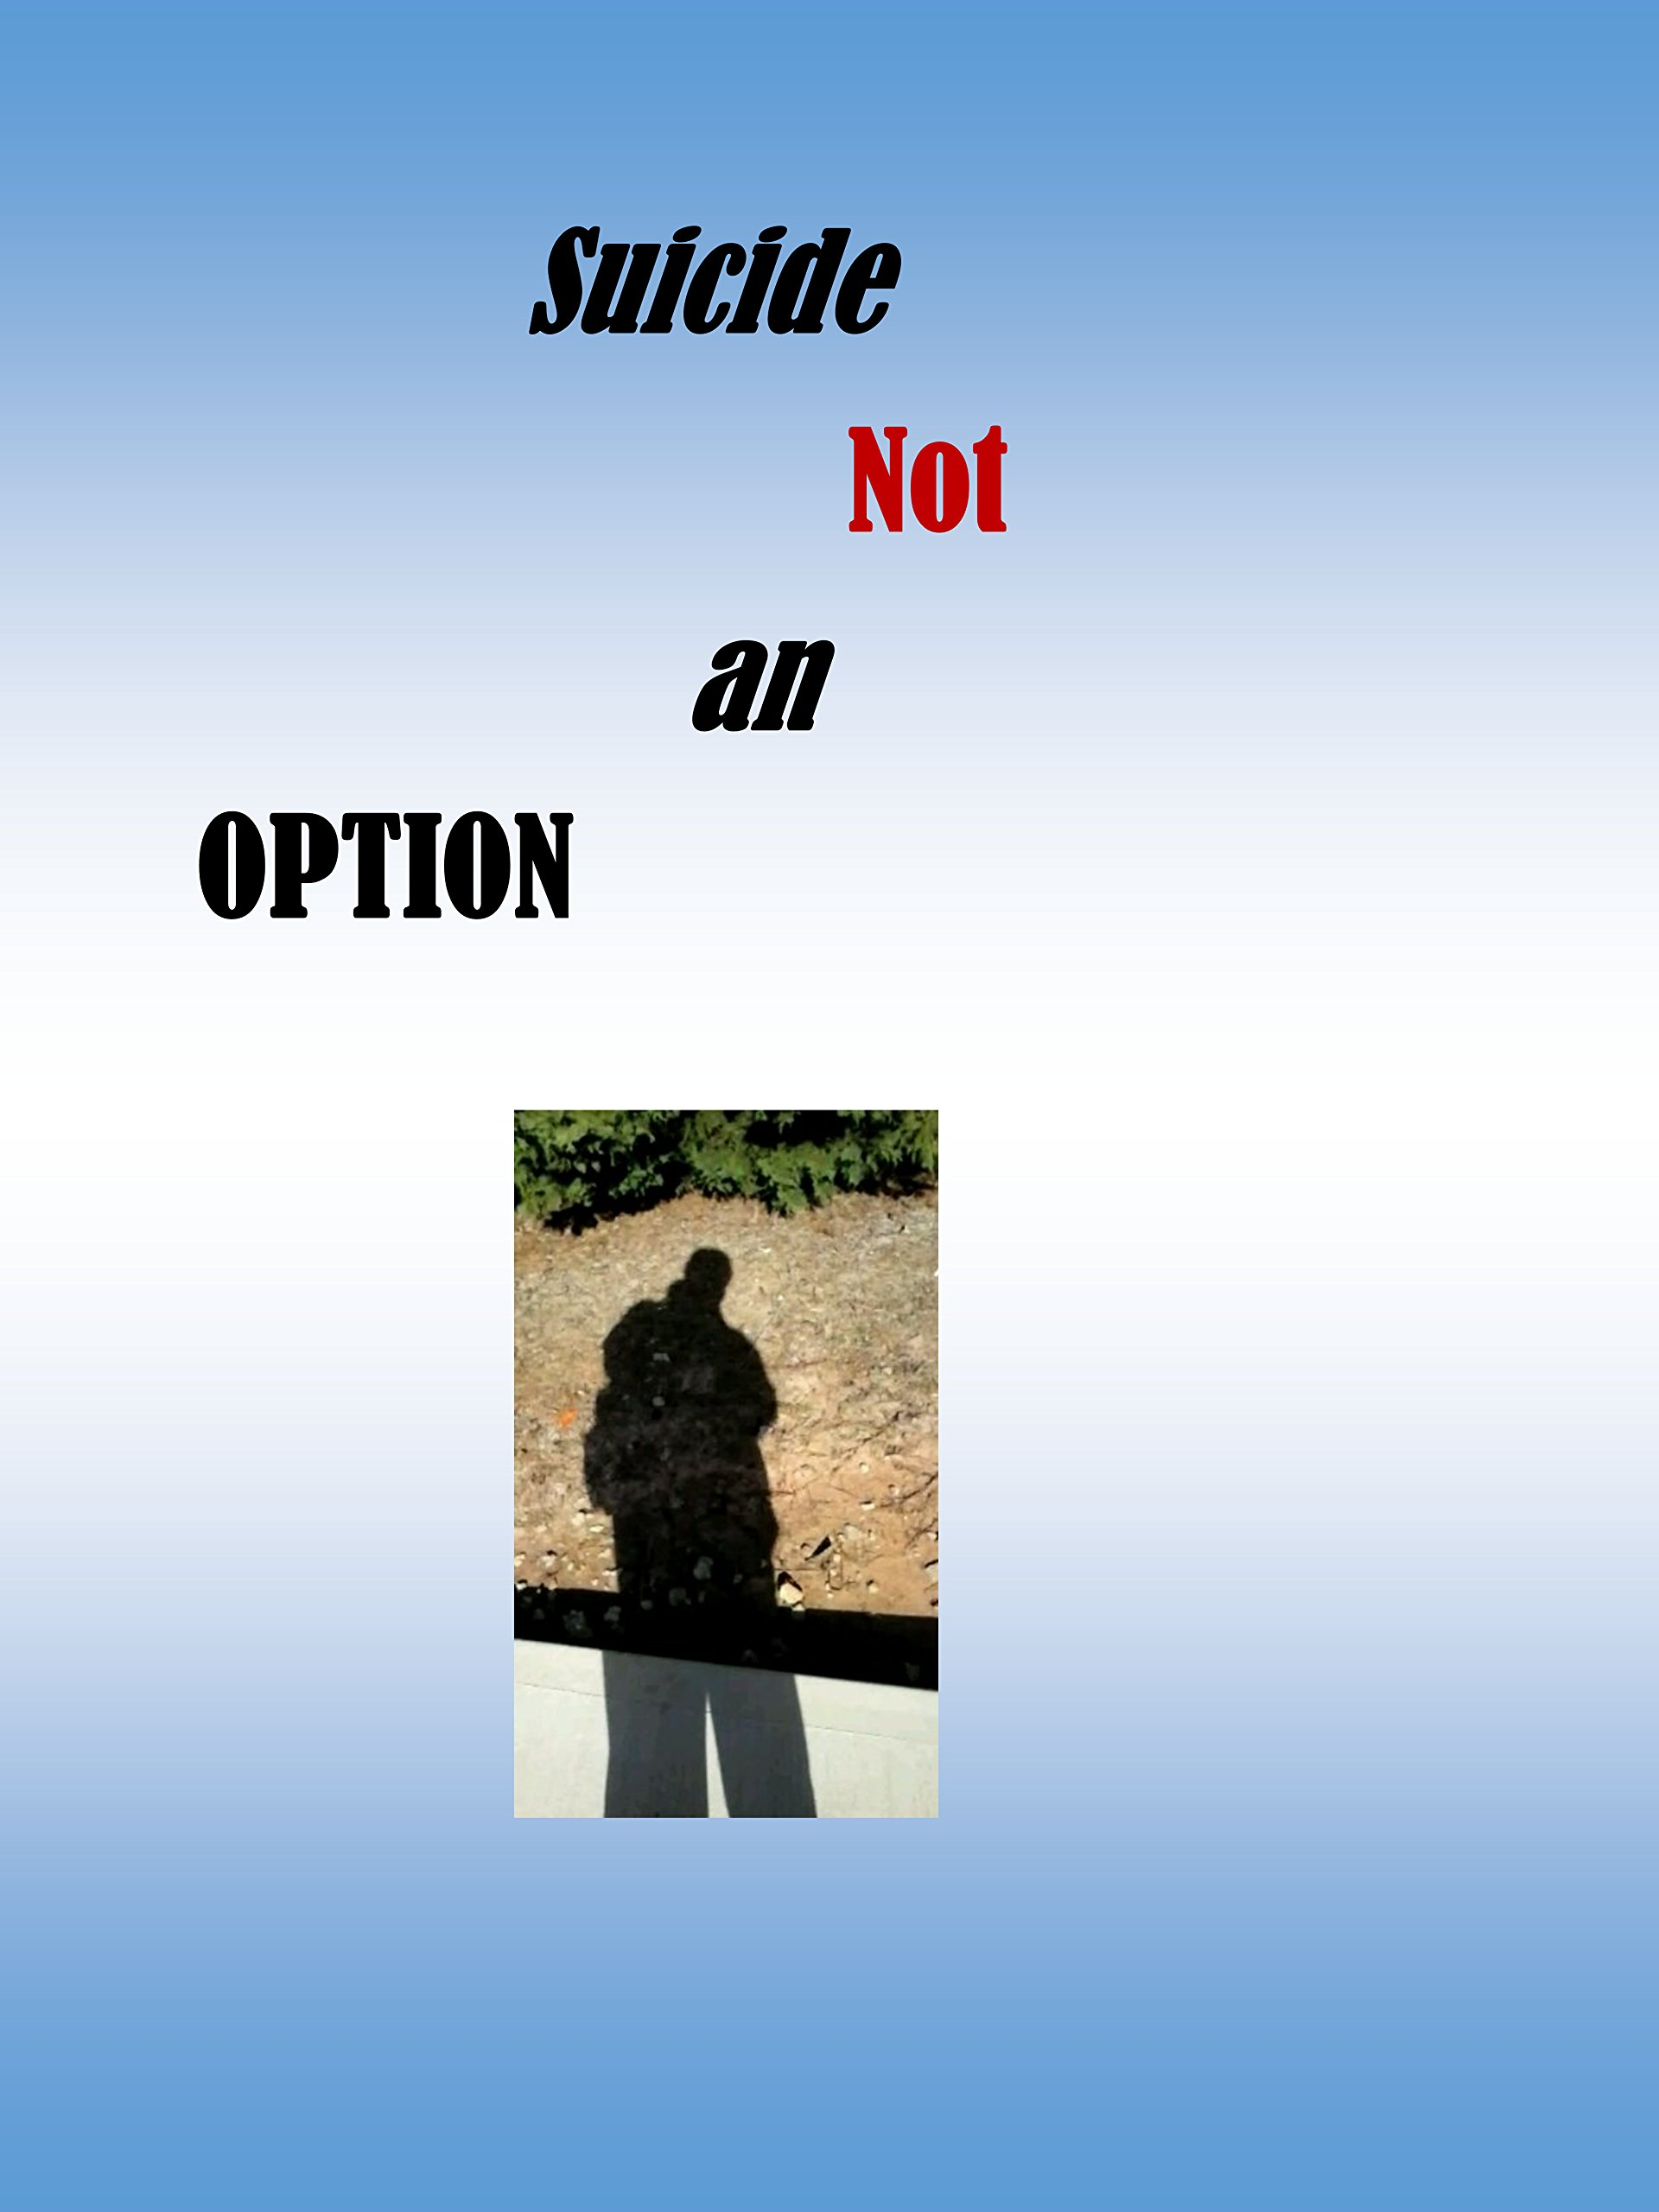 suicide is not an option